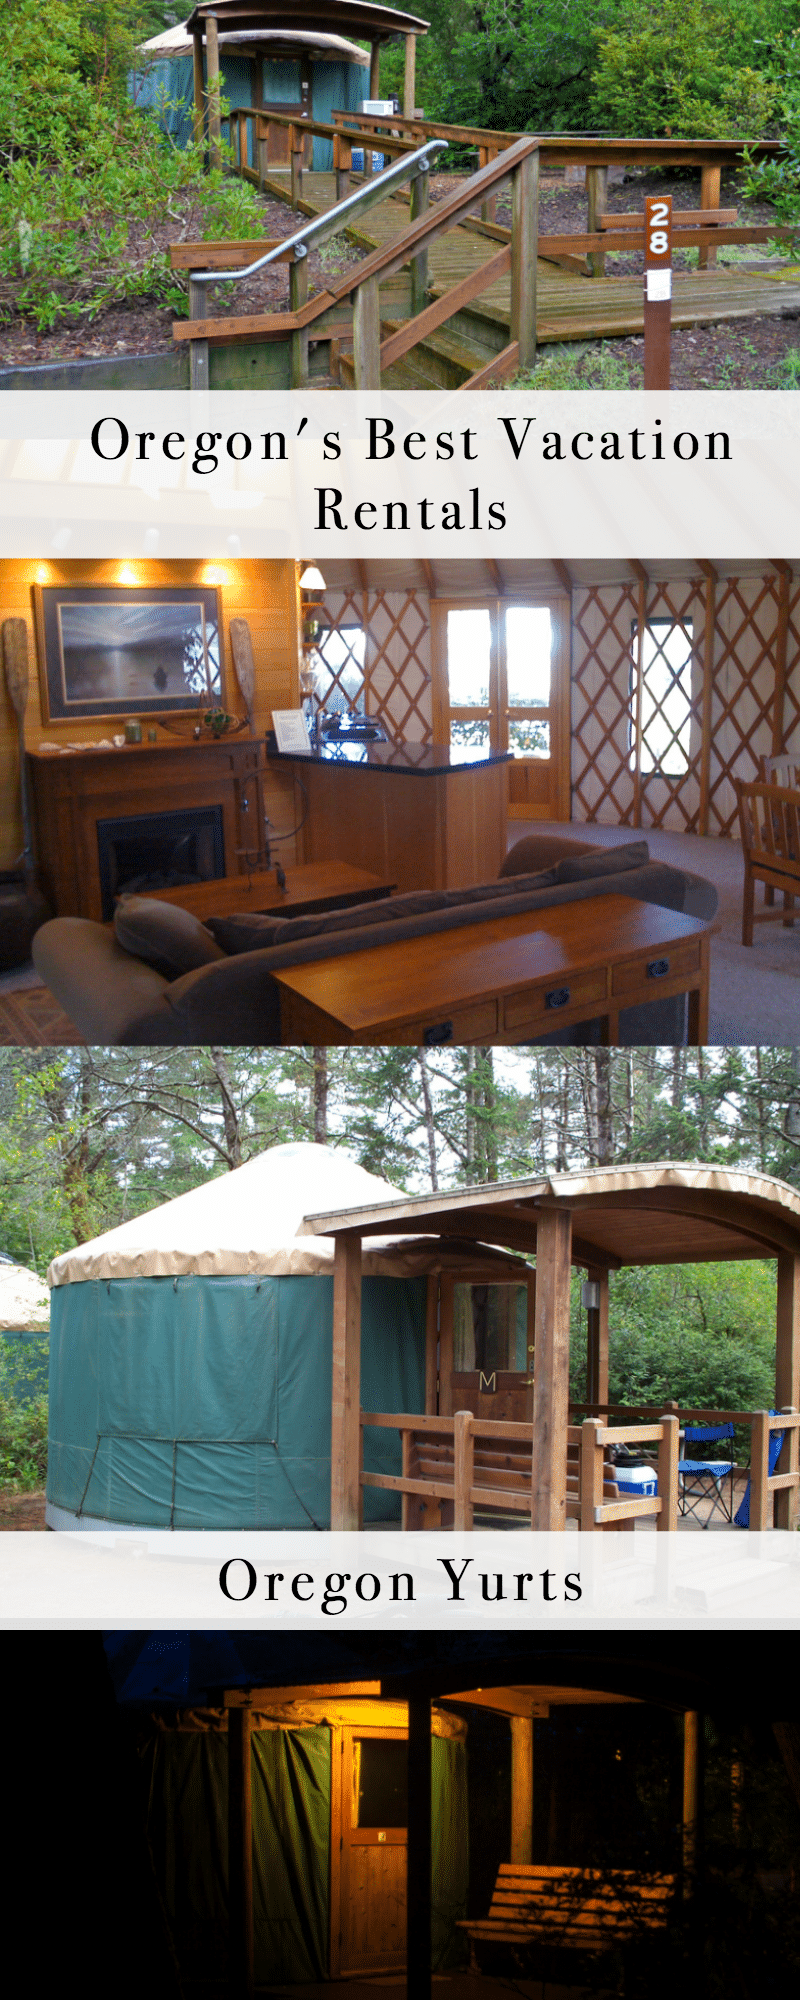 Oregon's Best Vacation Rentals: Oregon Yurts